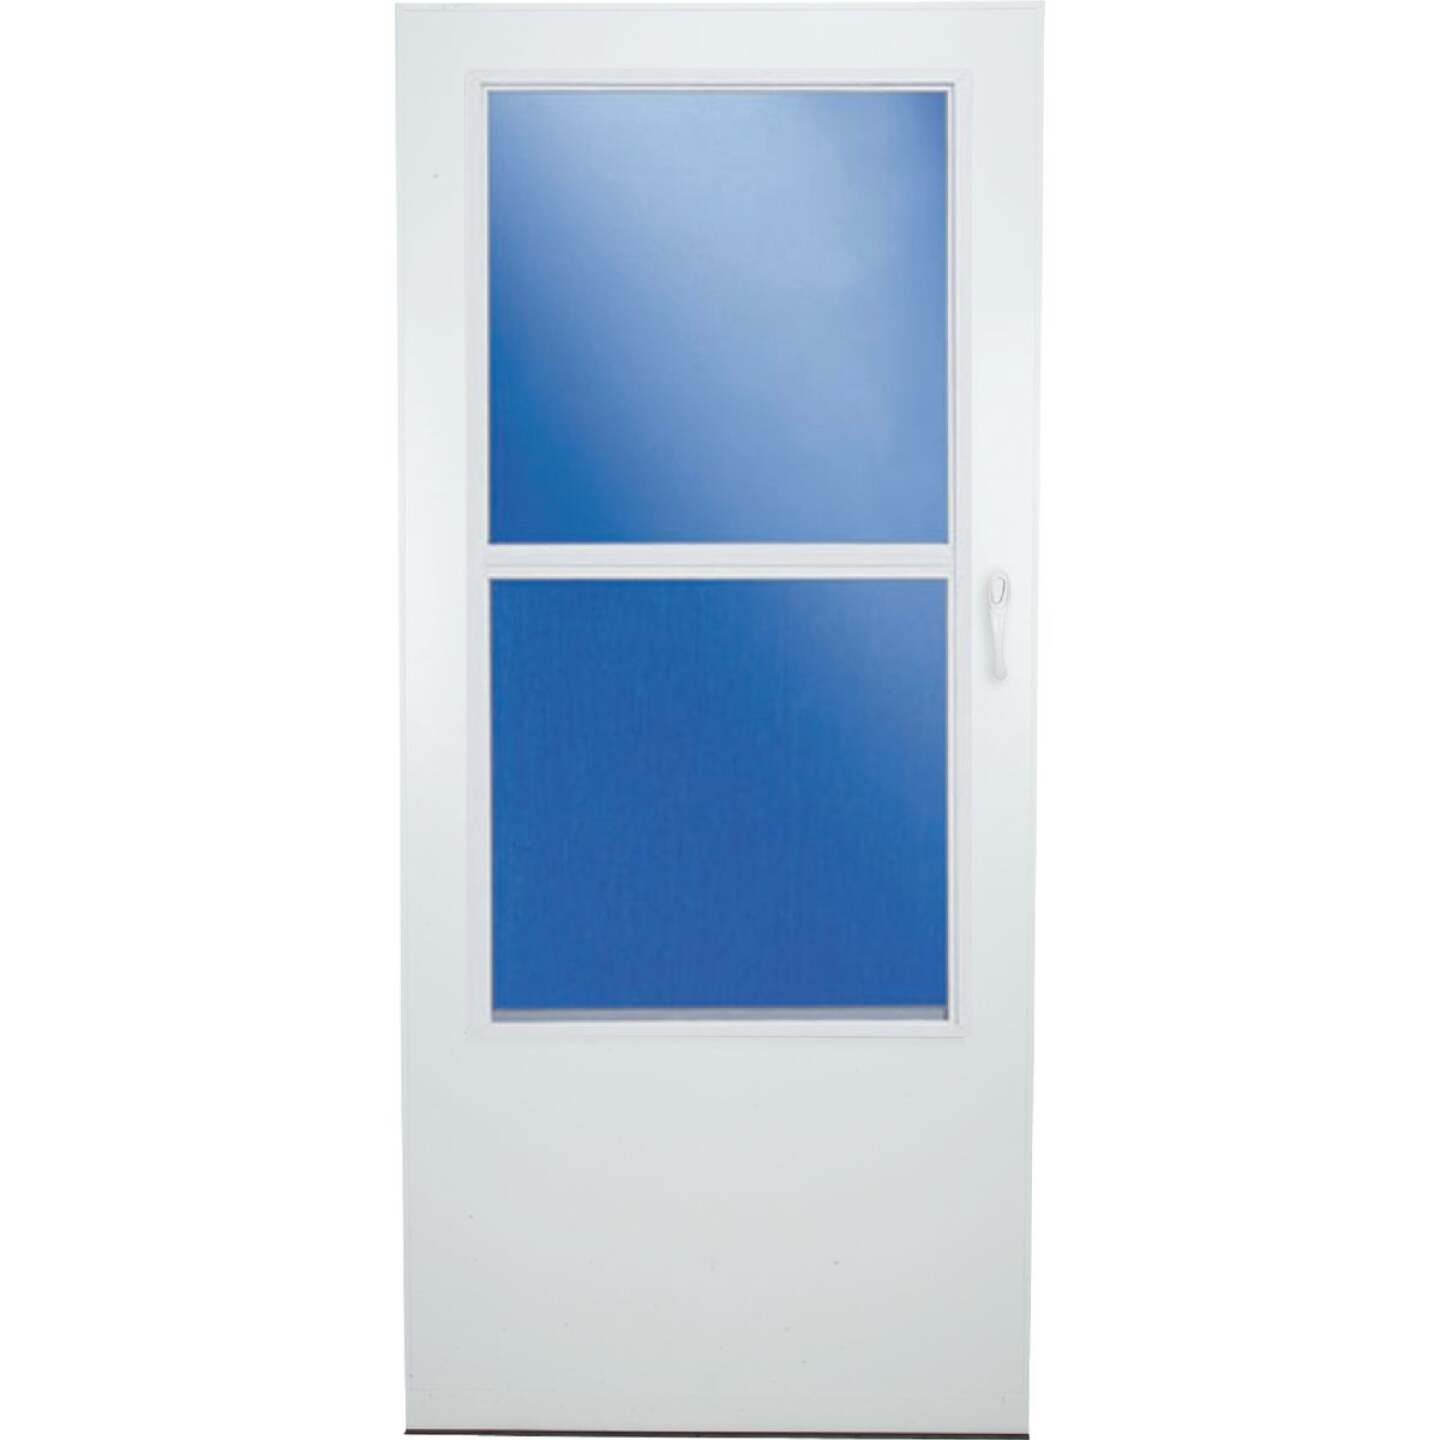 Larson Value-Core 36 In. W x 80 In. H x 1 In. Thick White Self-Storing Aluminum Storm Door Image 3